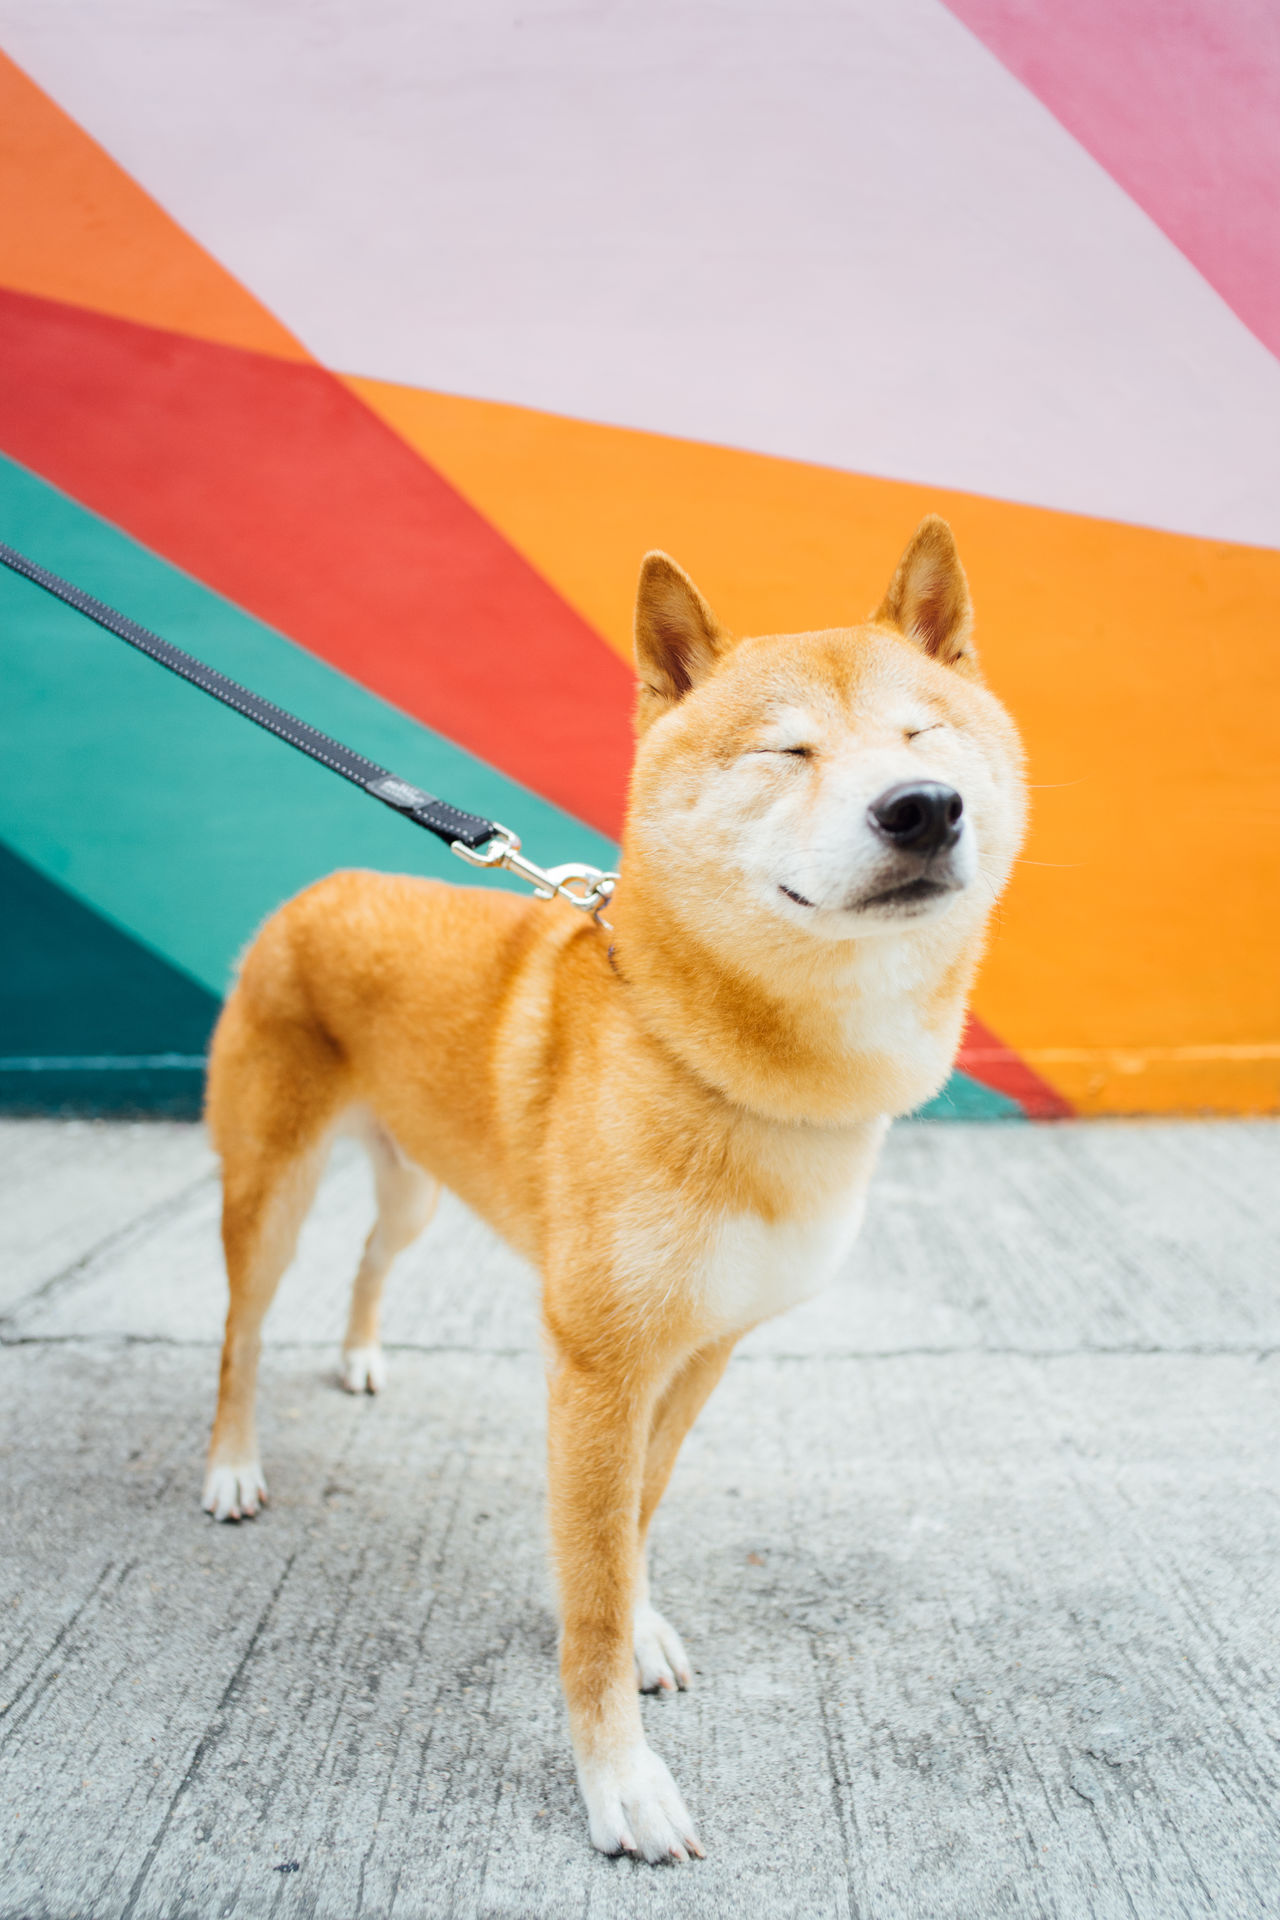 Animal Themes Close-up Day Dog Doglover Dogs Domestic Animals Mammal No People One Animal Outdoors Pets Portrait Shiba Shibastagram